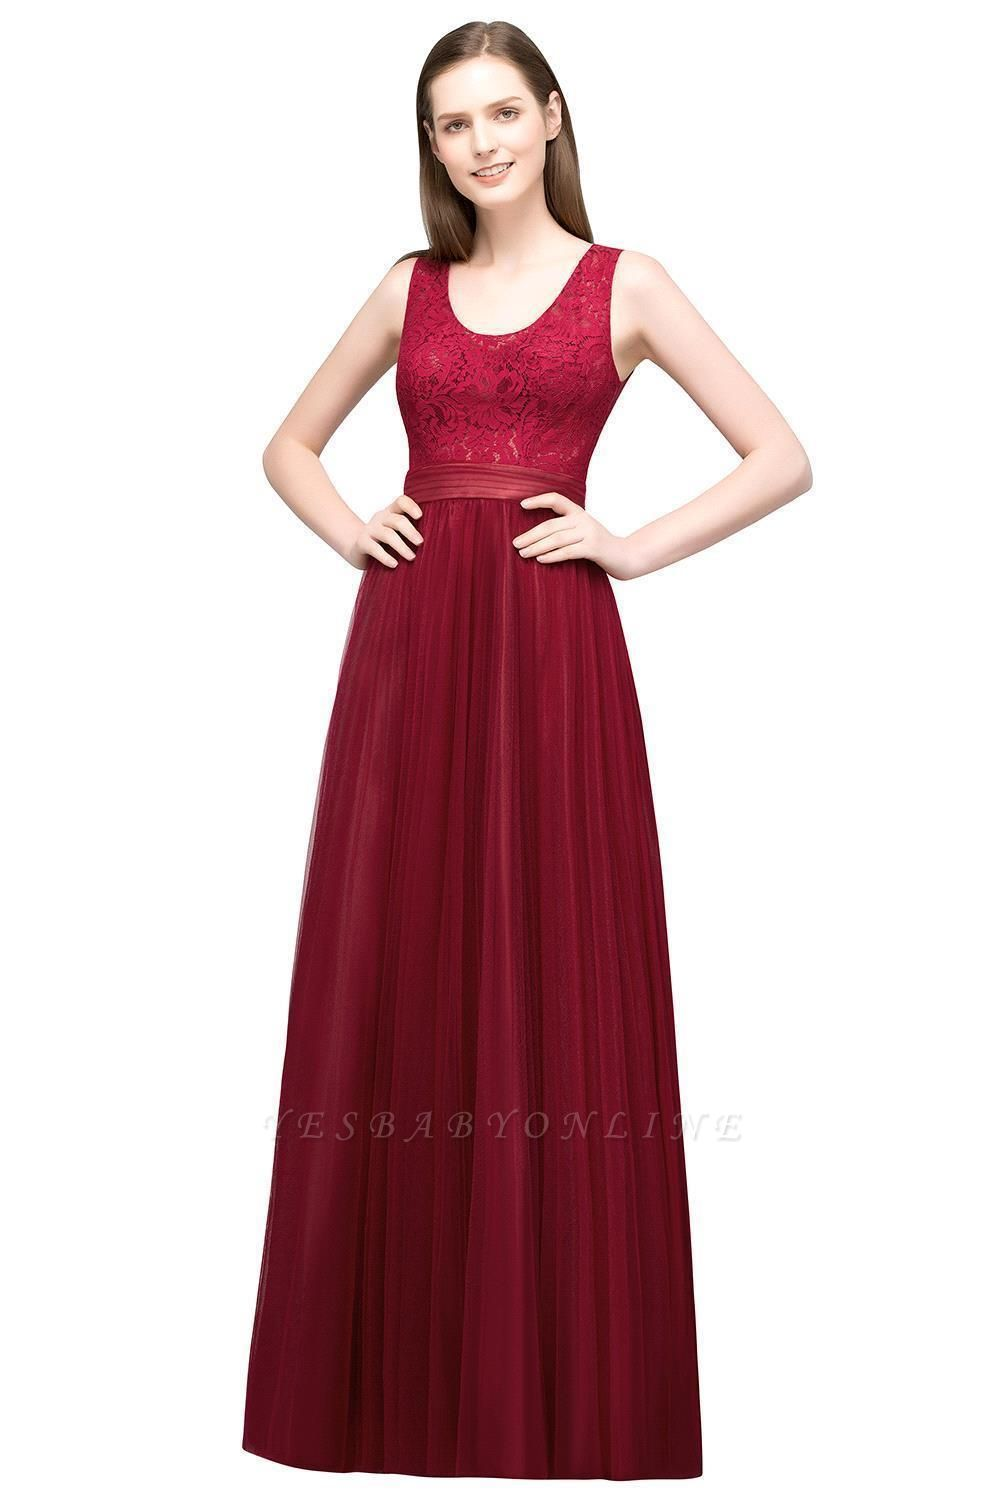 A-line Scoop Long Sleevless Lace Top Burgundy Tulle Prom Dress In Stock